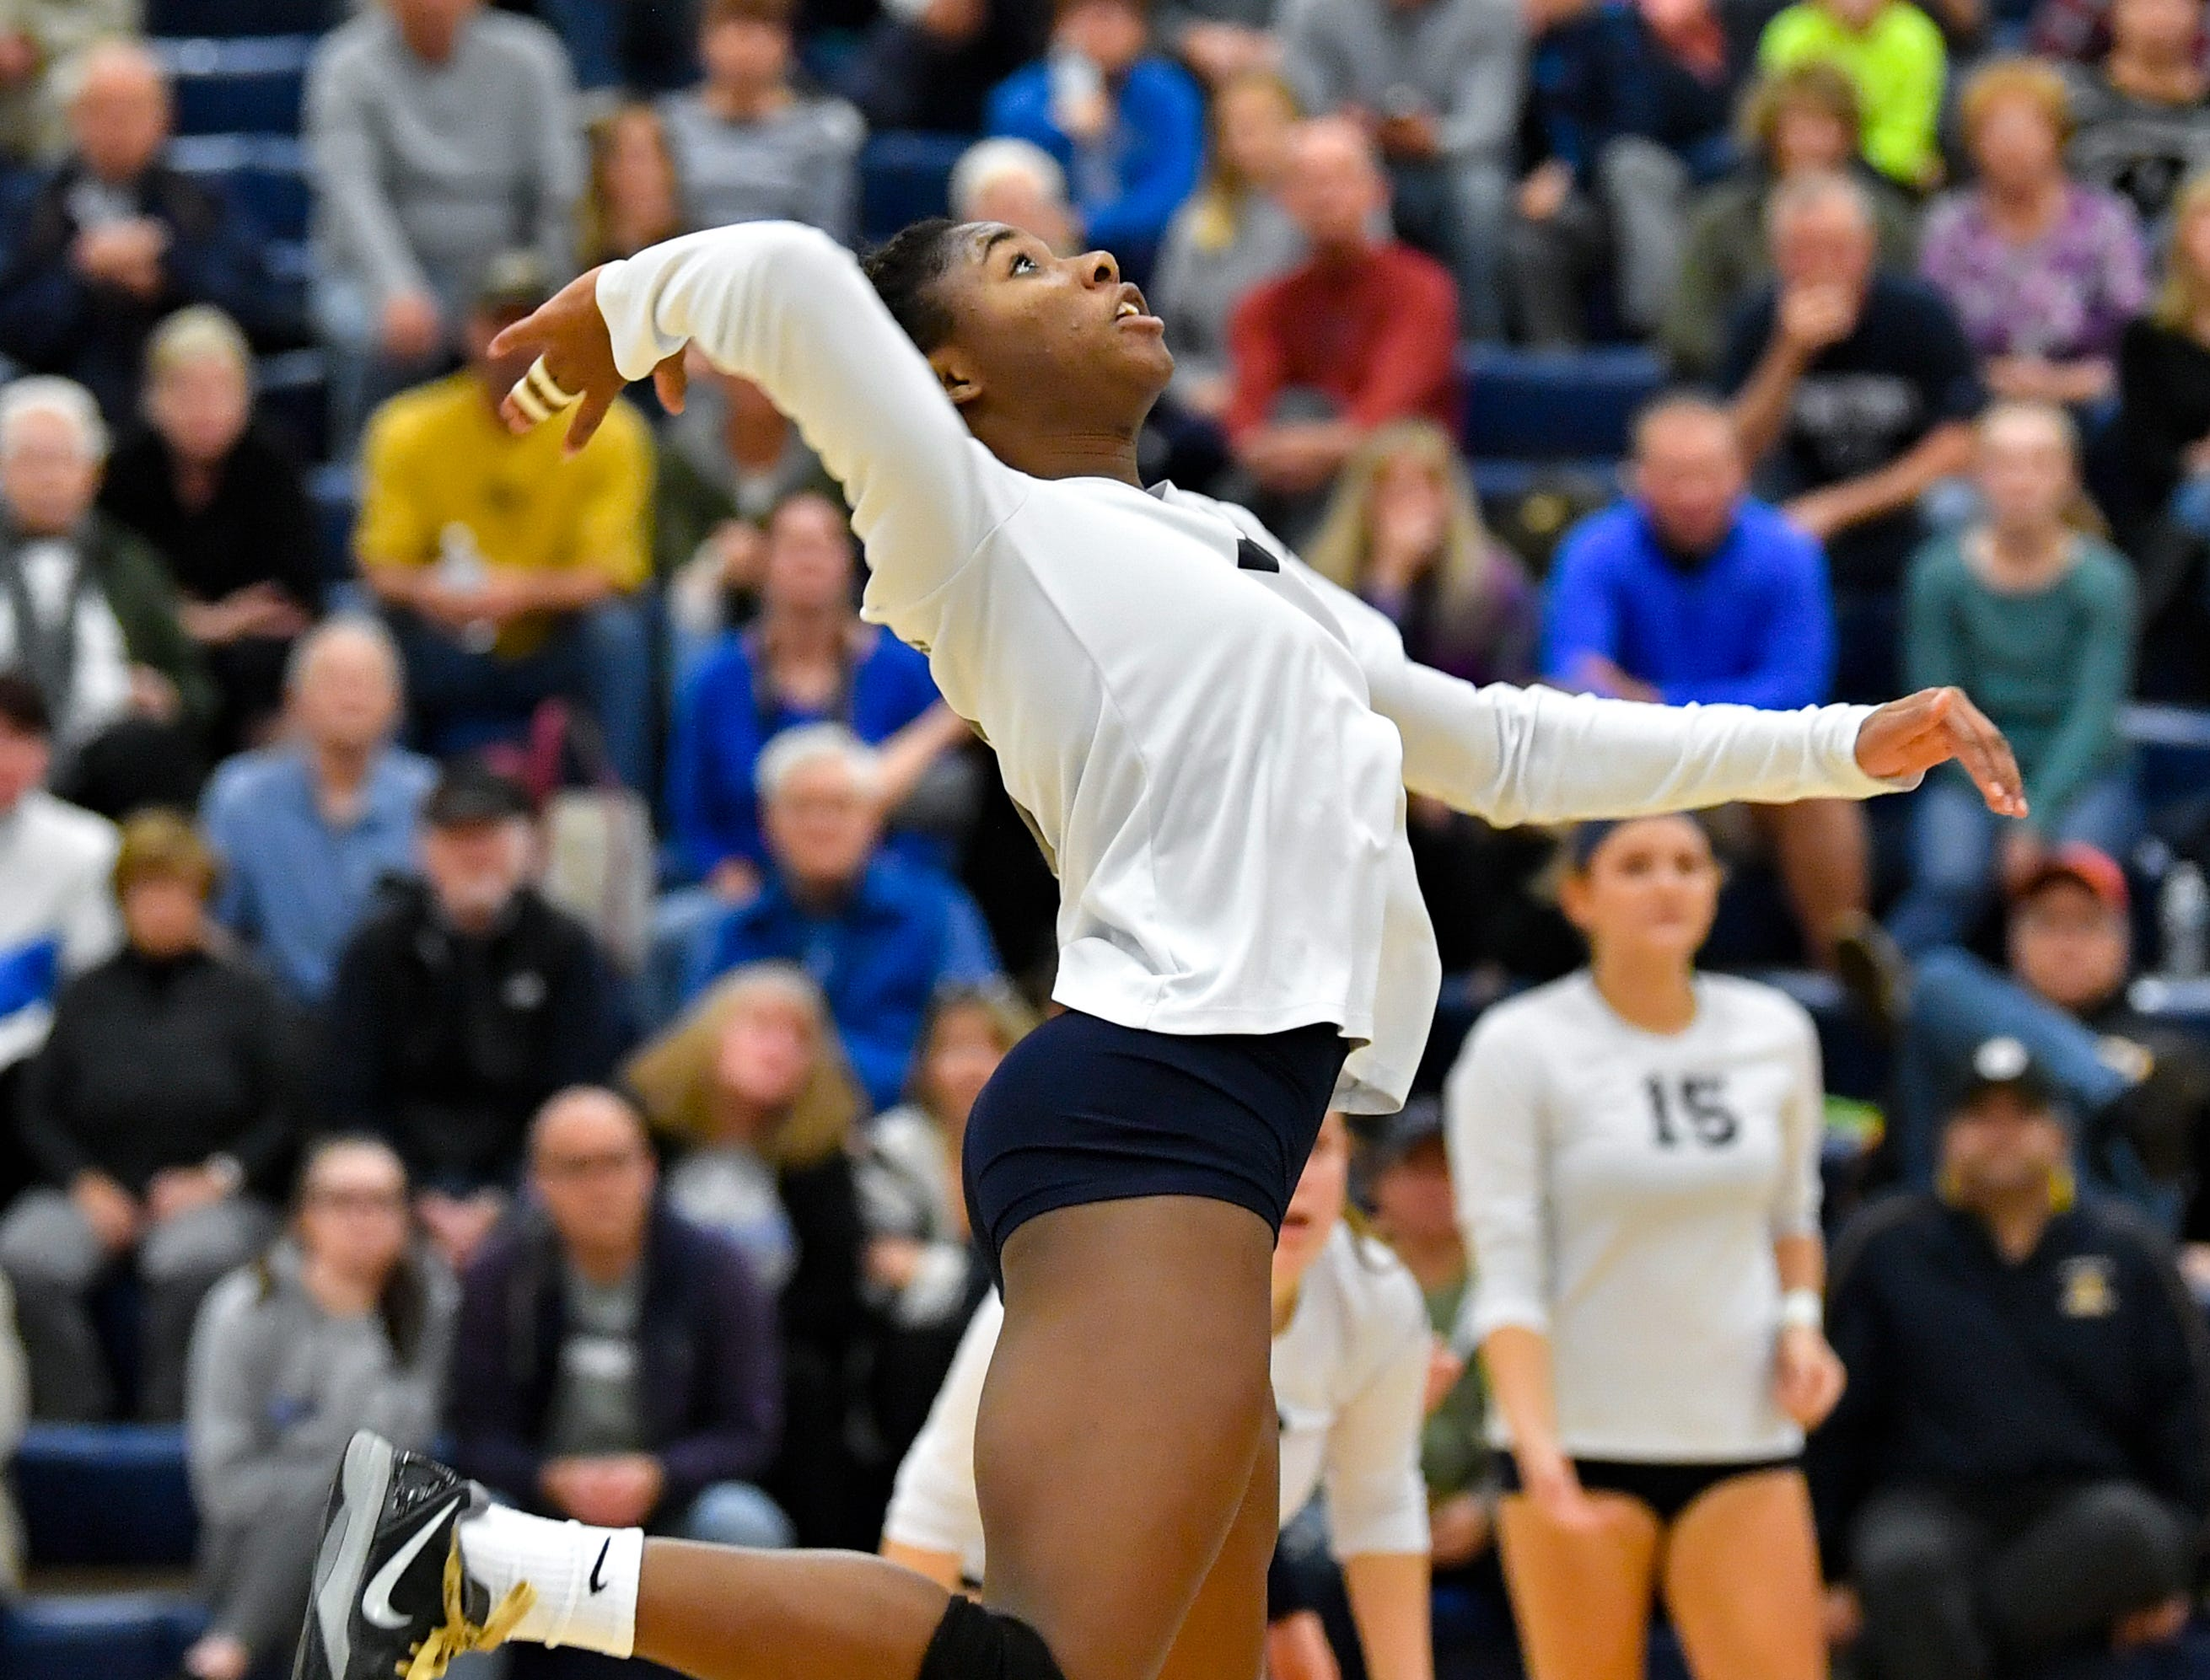 Tesia Thomas (19) tracks the ball during the District 3 Class 3A girls' volleyball quarterfinals between West York and Eastern York at West York High School, October 30, 2018. The Bulldogs defeated the Golden Knights 3-0.